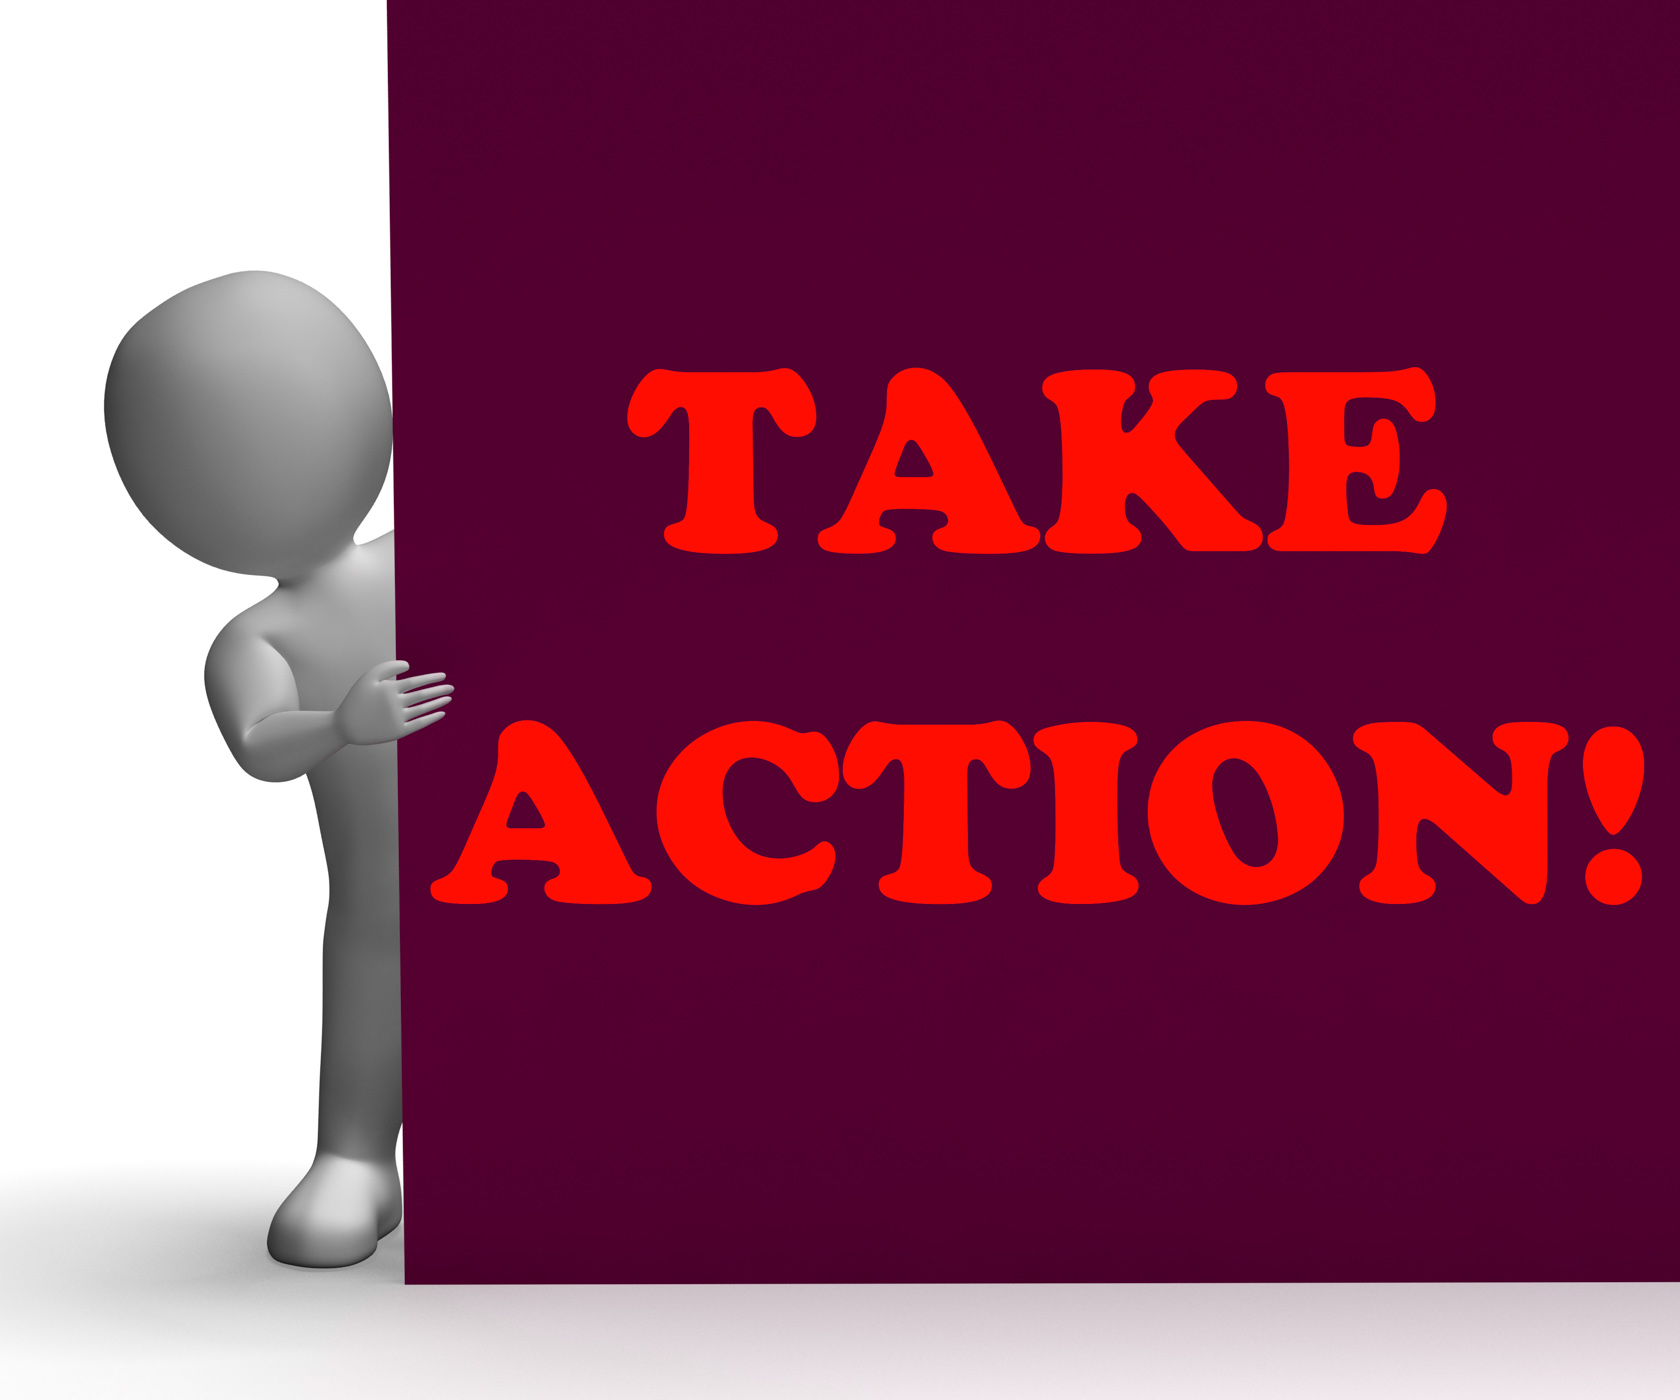 Take Action Sign Shows Inspirational Encouragement, Motivate, Take, Sign, Now, HQ Photo